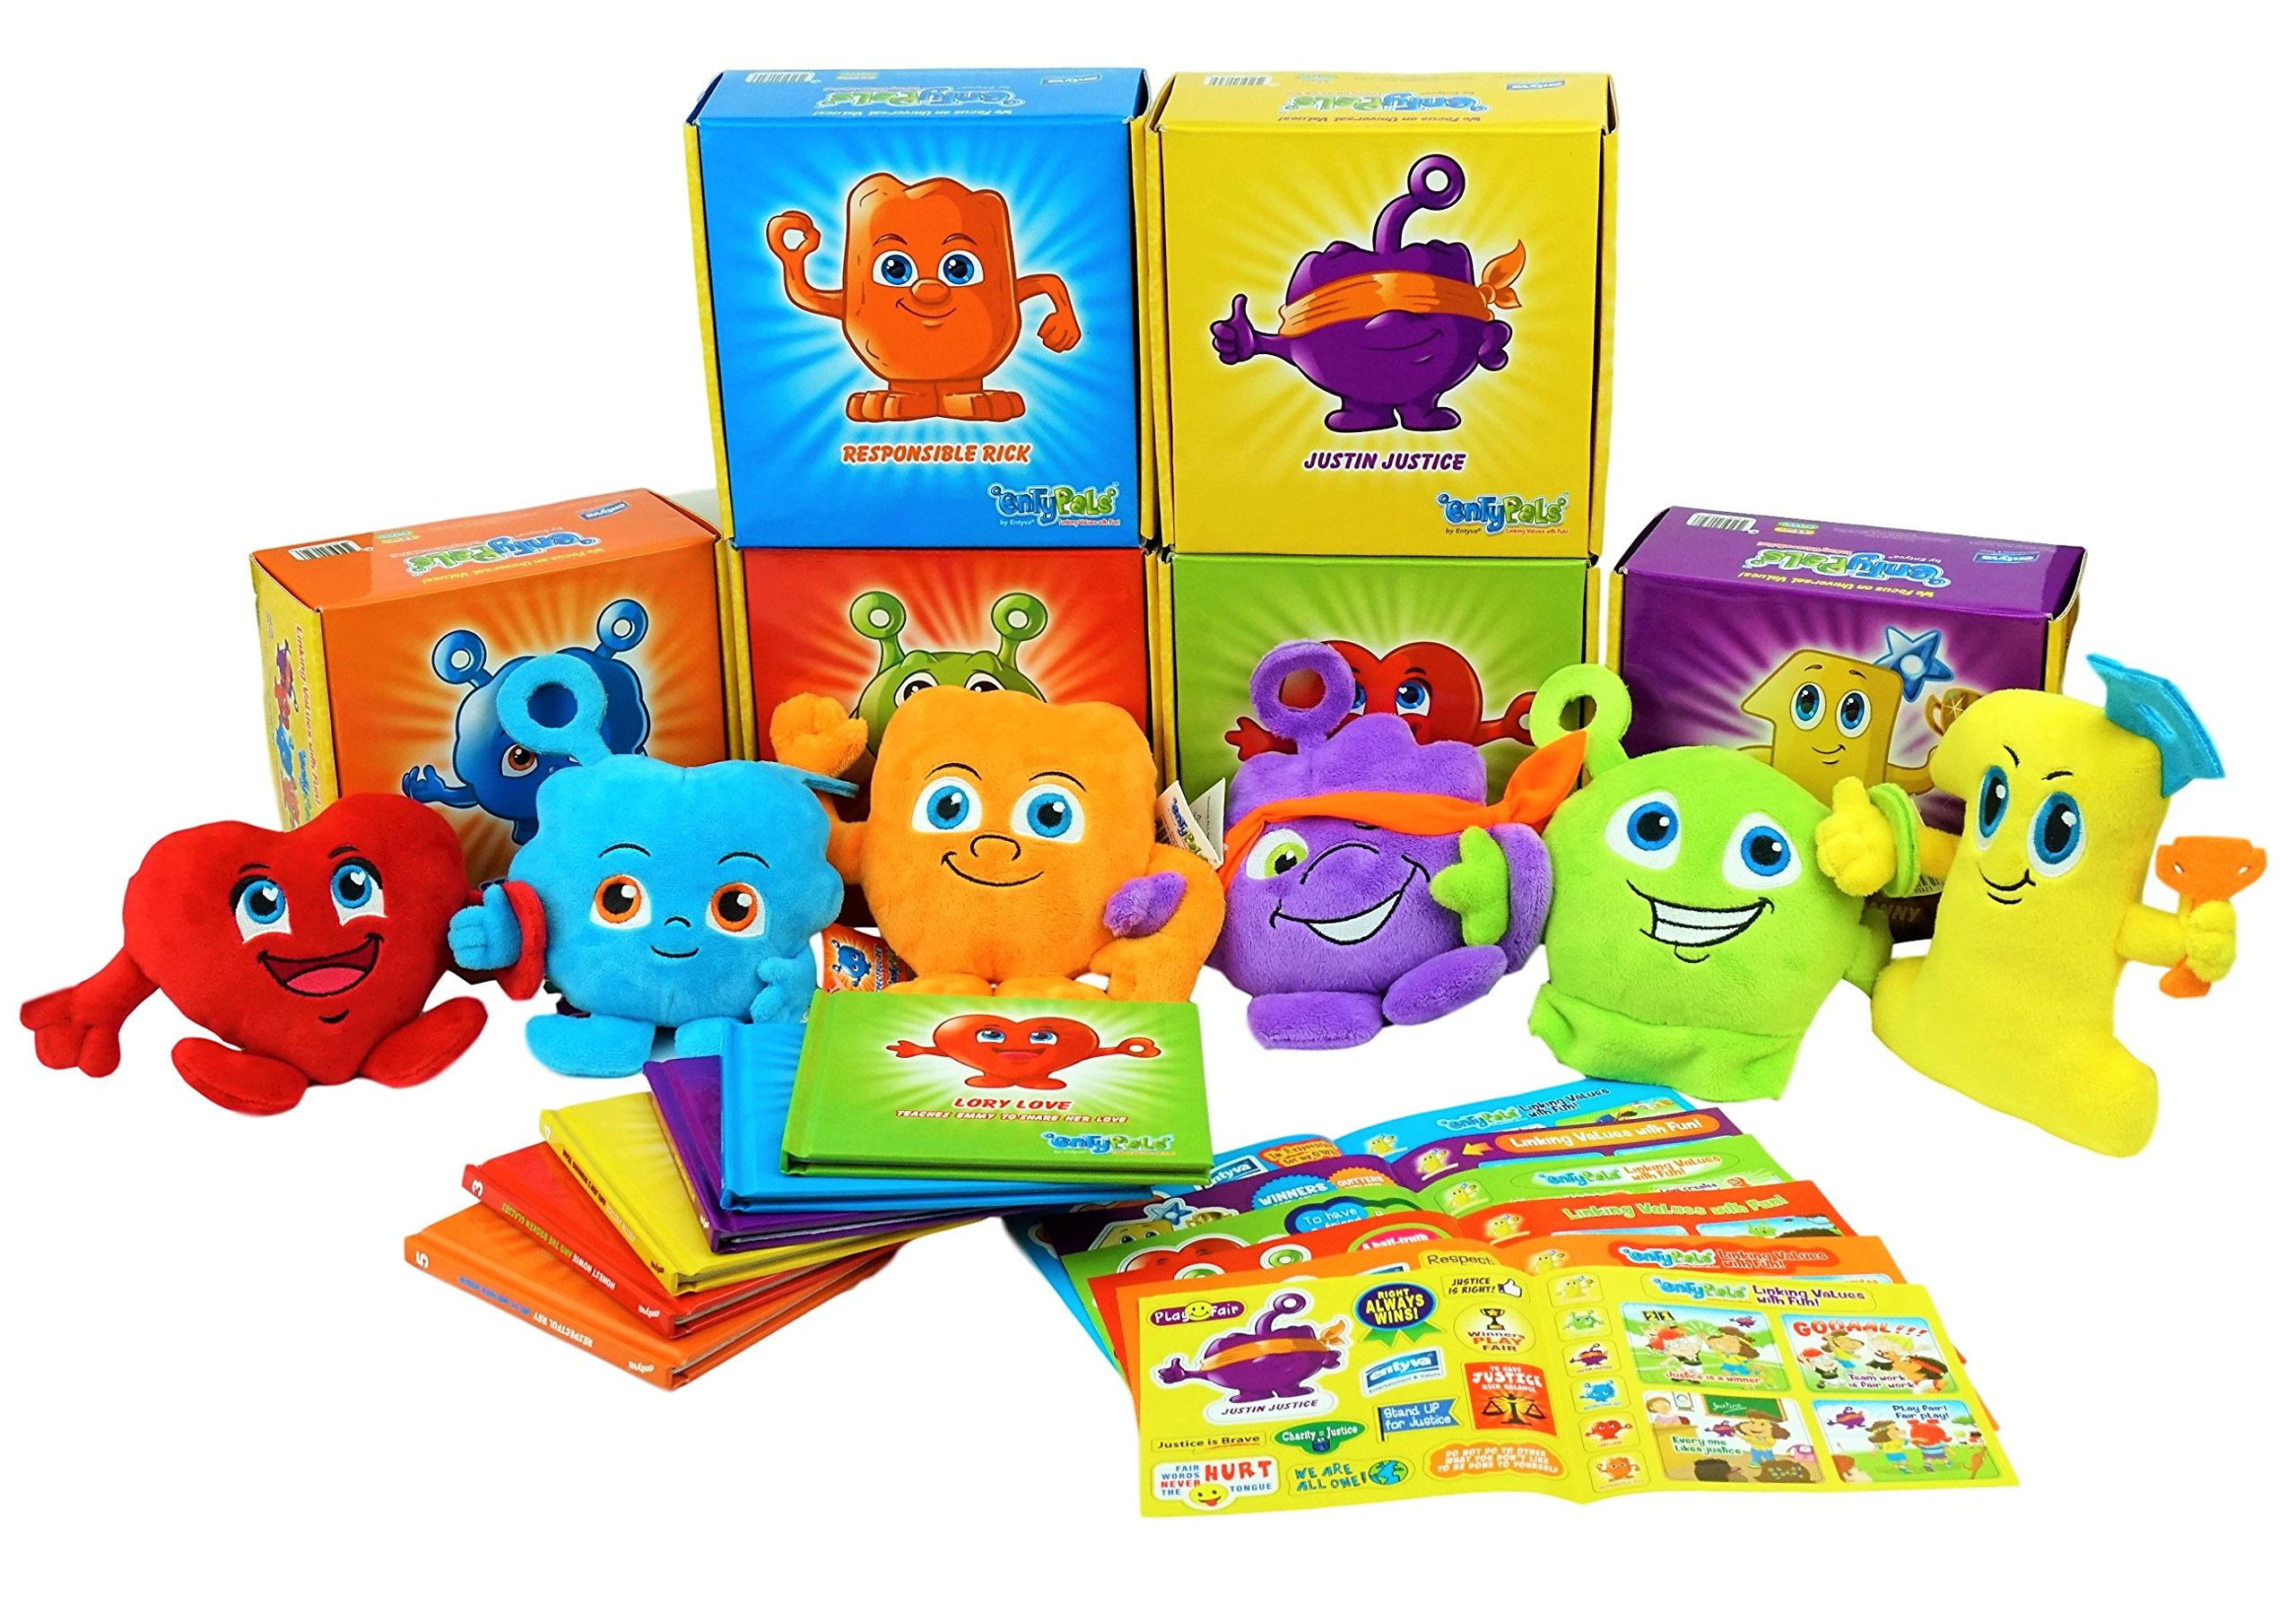 ENTYPALS Educational Plush & Learning Board Book (All 6 Set Collection) Great Gift Set for Kids or Children Boys or Girls. Kids Learning Toy. Toddler Activities and Kids Therapy Help. by Entyva